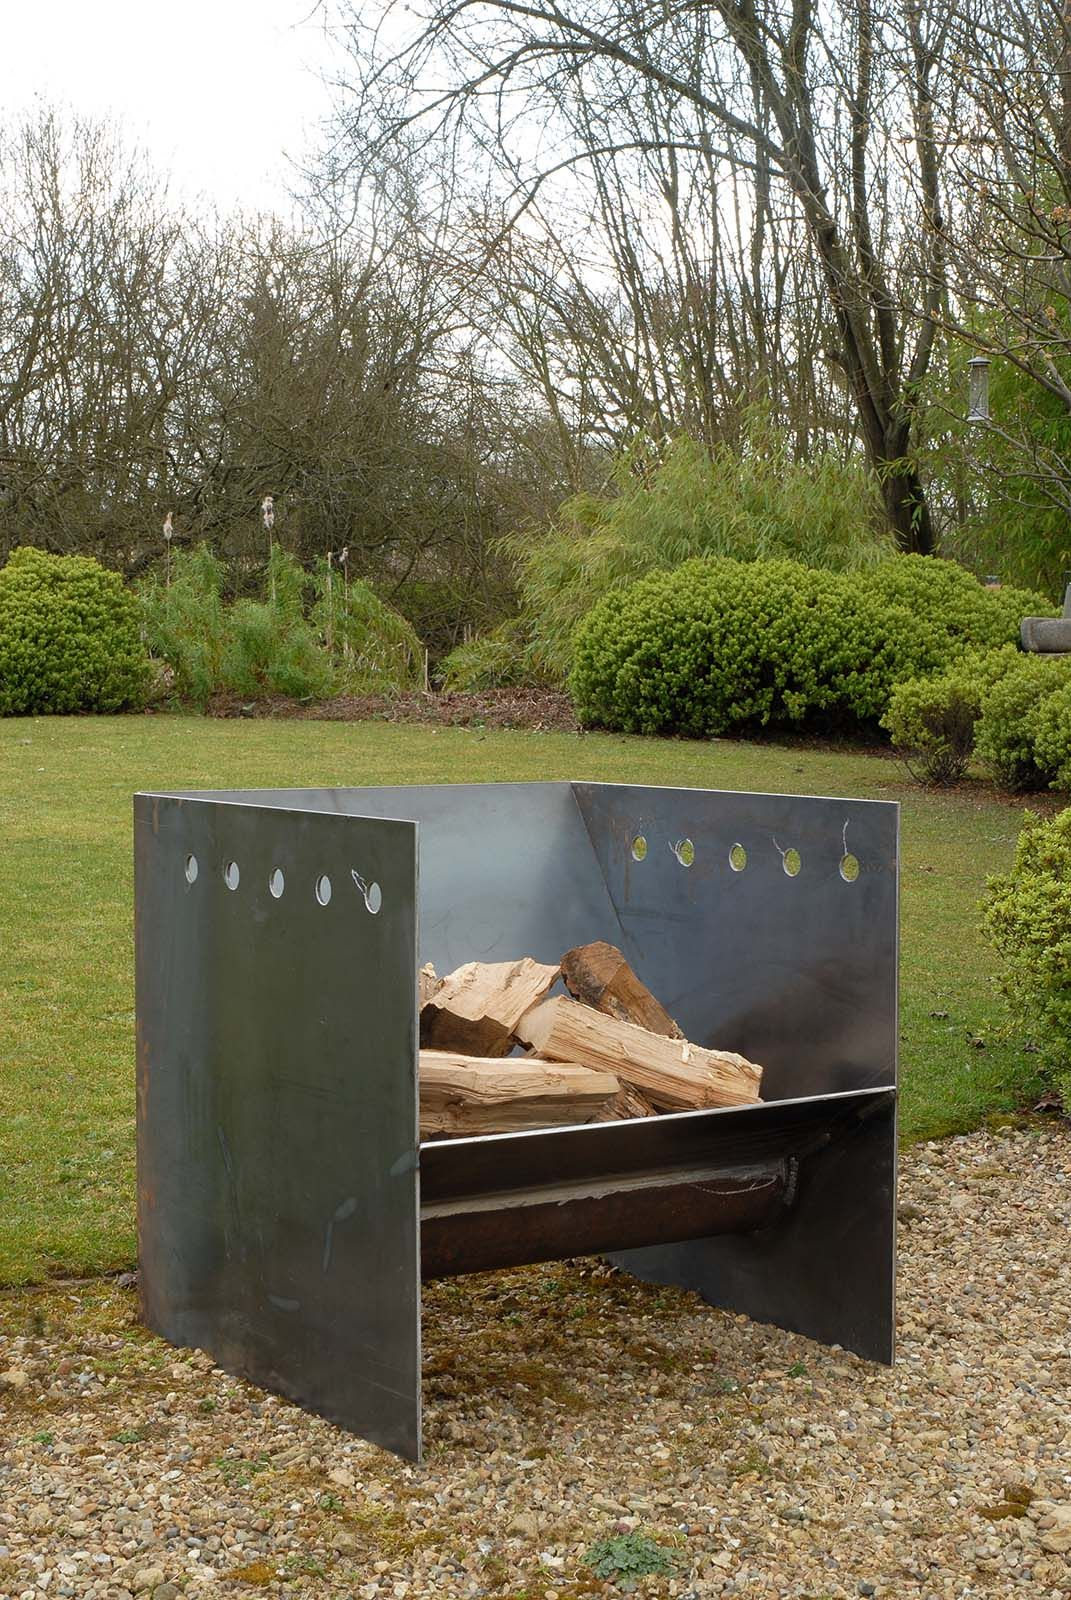 Estufas Para Exteriores Superchunk Fire Pit From Magmafirepits Durable 5mm Steel